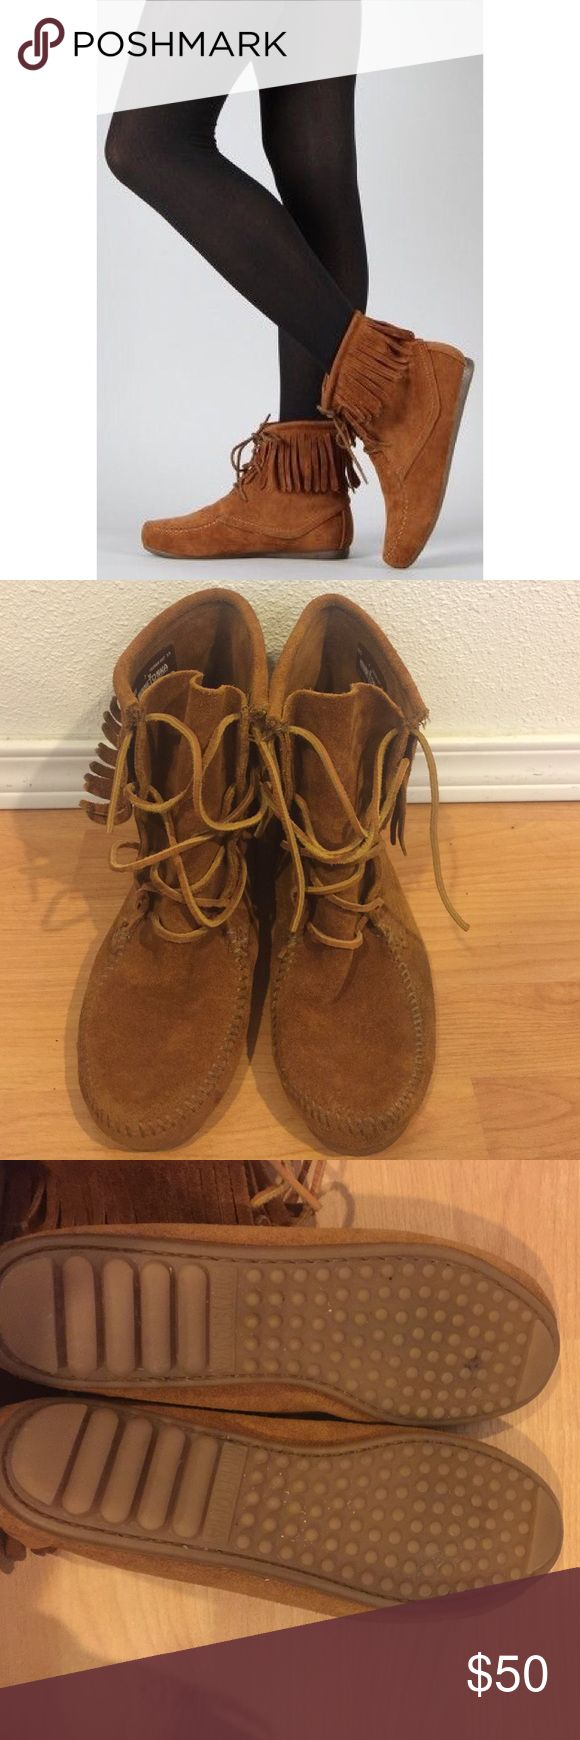 """[Minnetonka] •Suede Fringe Lace Up Tramper Boots• Beautiful Minnetonka suede fringe lace up boots in """"Tramper"""" style. Gently worn, lots of life left. Some scuffs/marks - could probably be removed with suede shoe cleaner. Size 7. Minnetonka Shoes Lace Up Boots"""